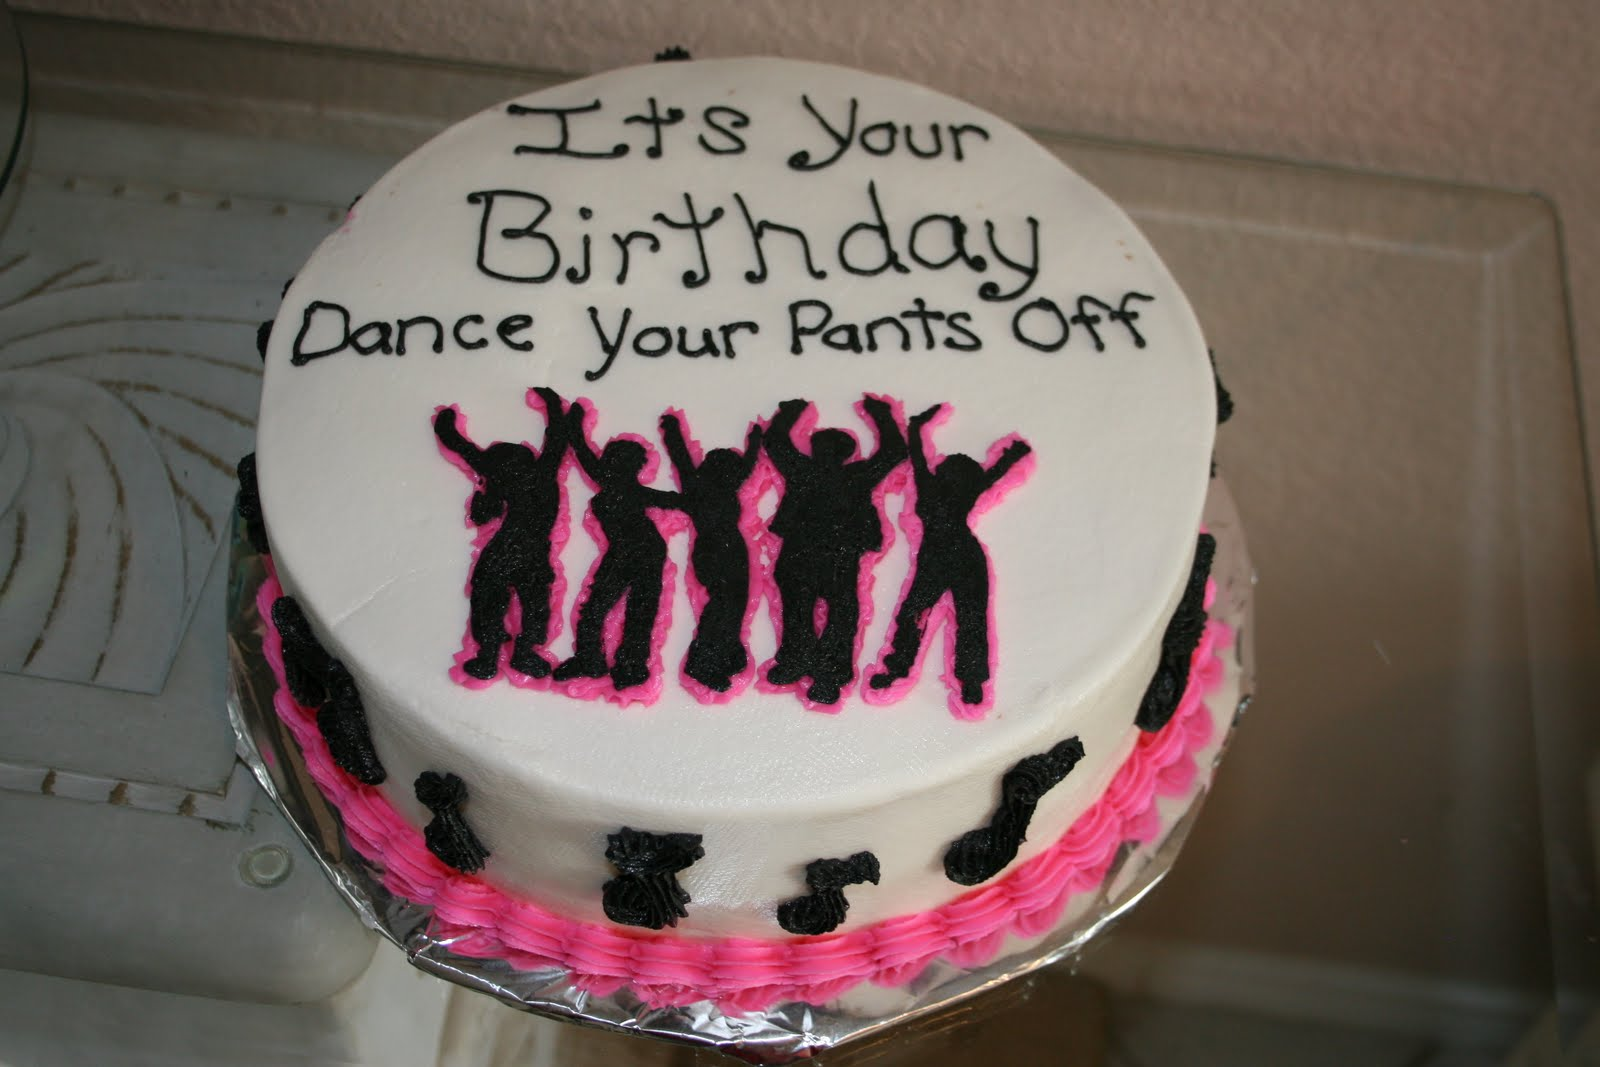 Dance Party Cake Images : Rachel s Creative Cakes: Dance Party Cake